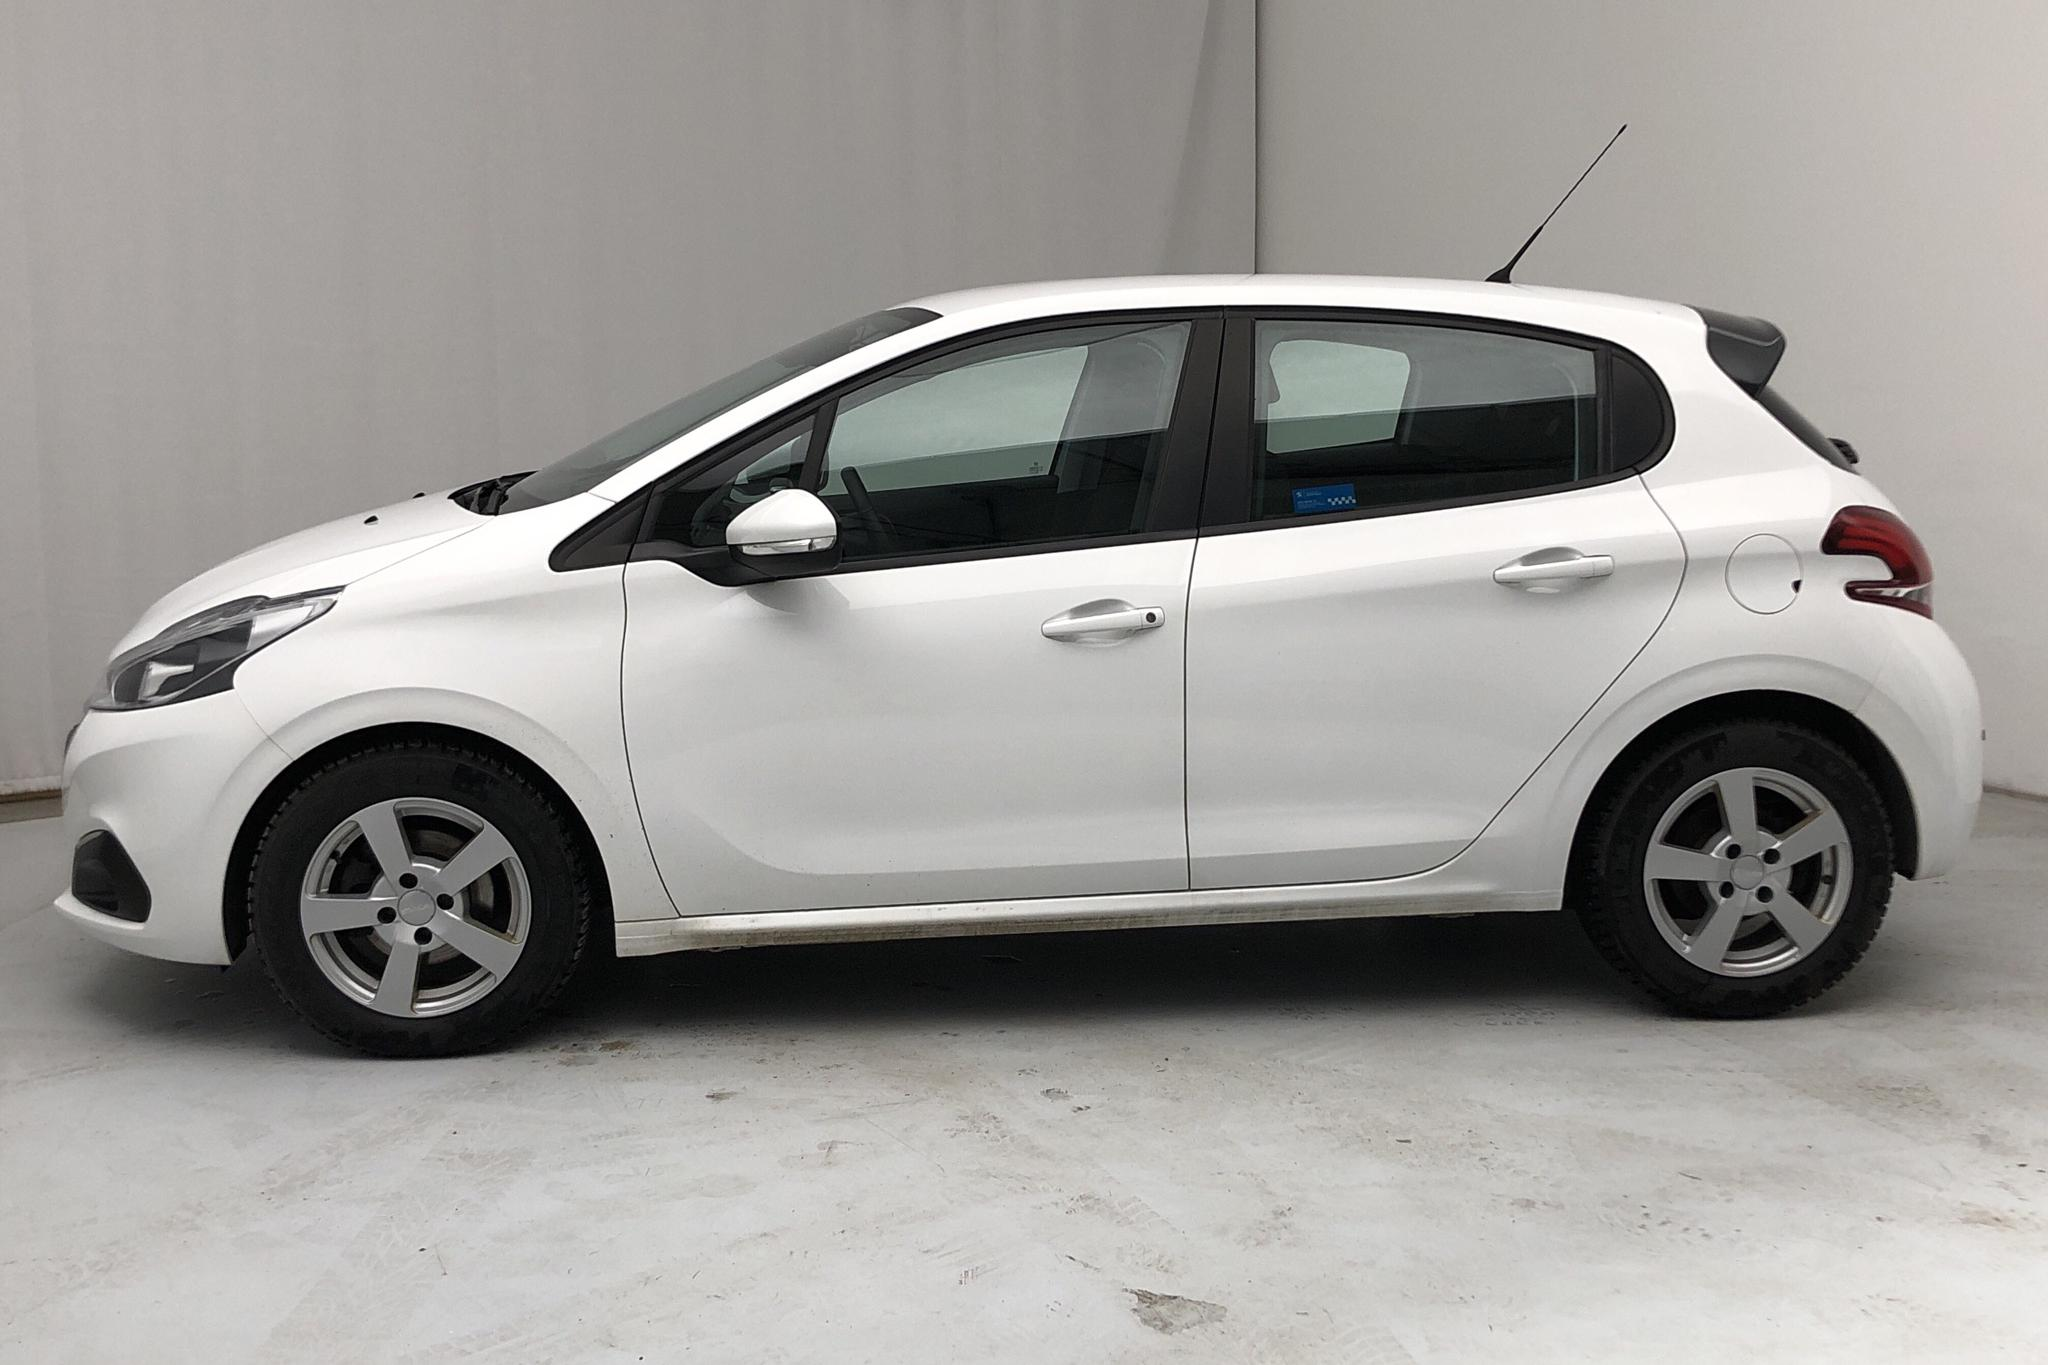 Peugeot 208 BlueHDi 5dr (100hk) - 31 550 km - Manual - 2017